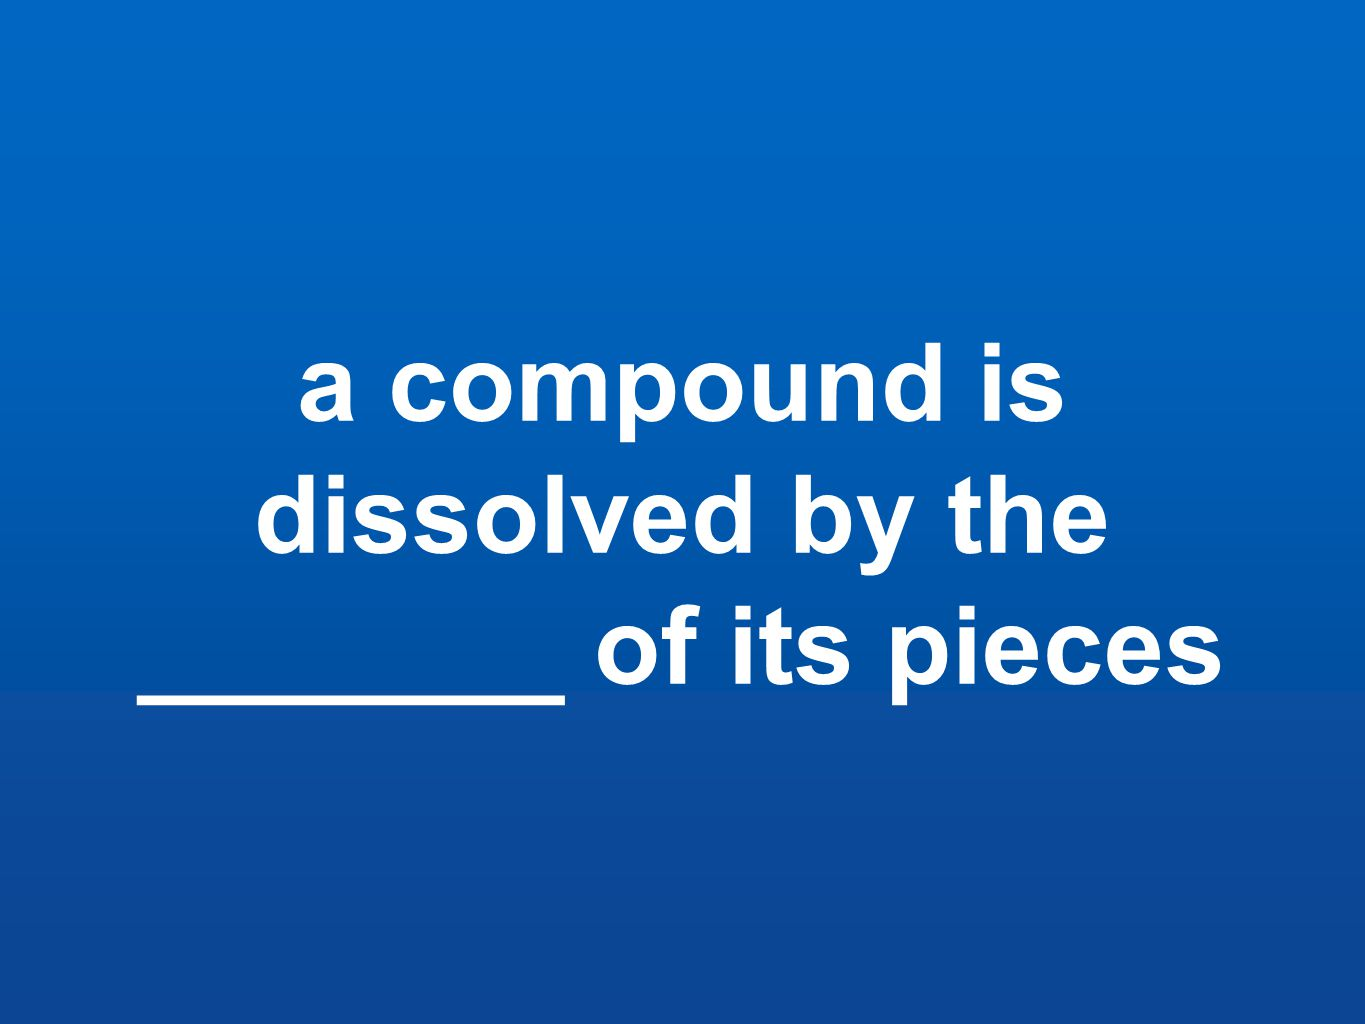 a compound is dissolved by the _______ of its pieces